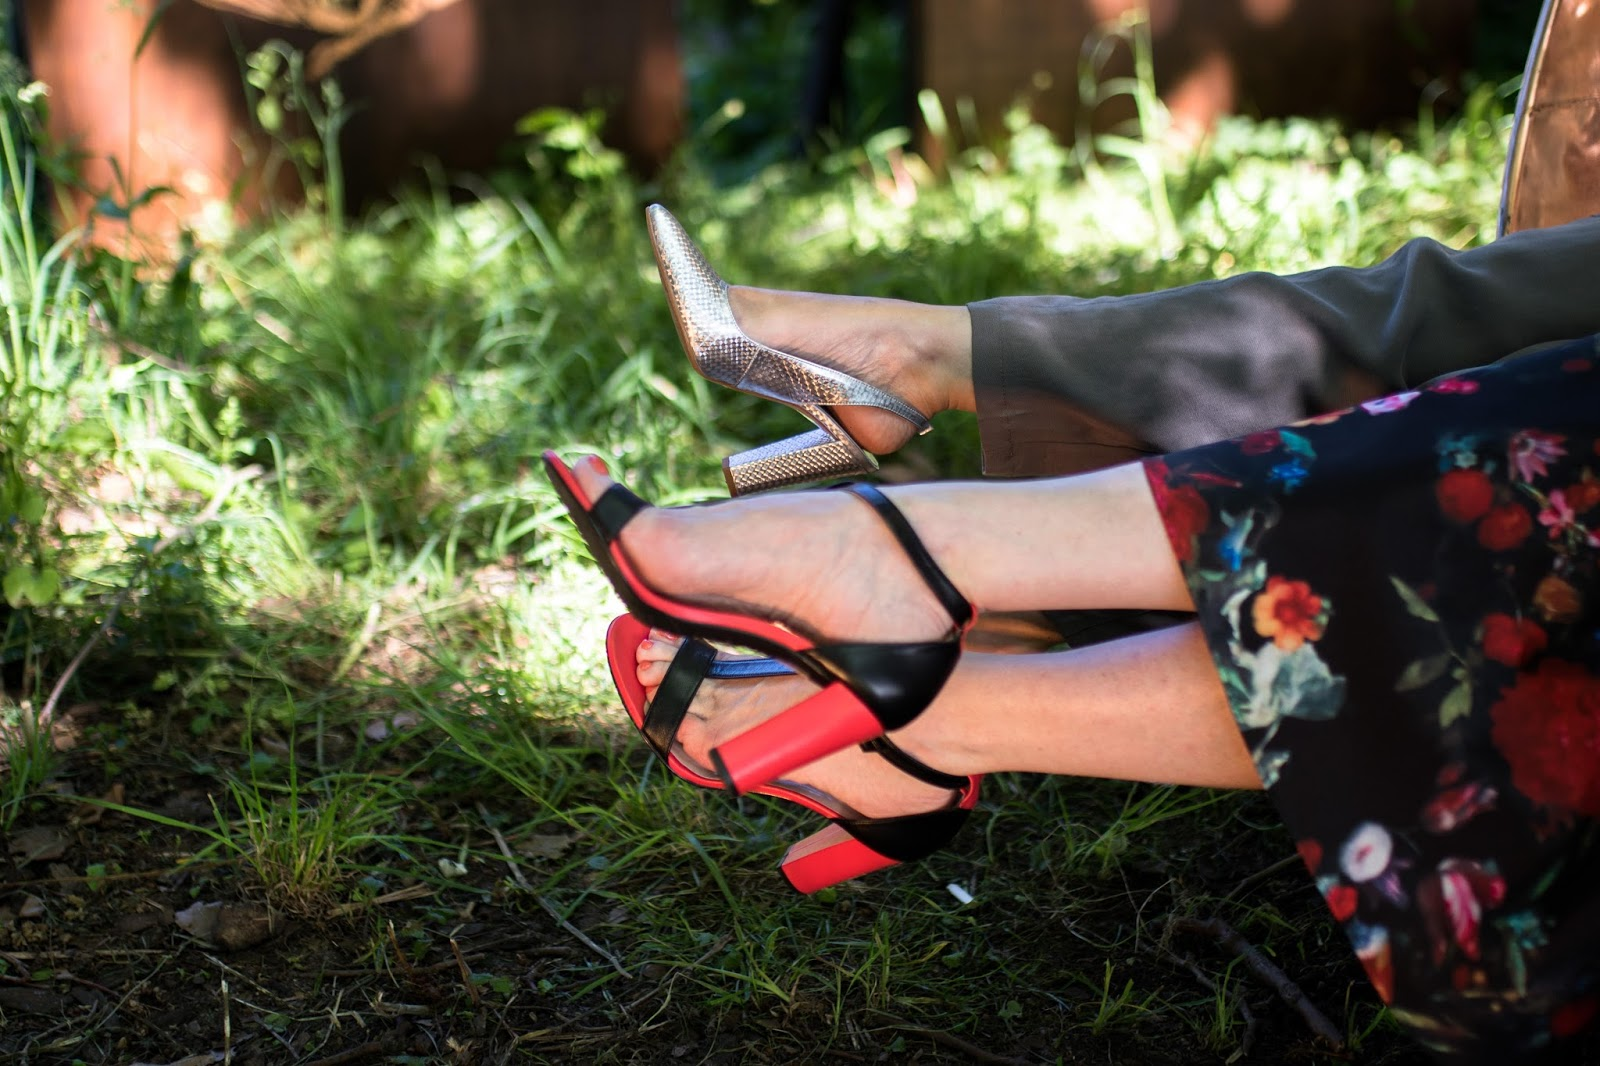 Tomato-red-black-leather-high-heeled-sandals